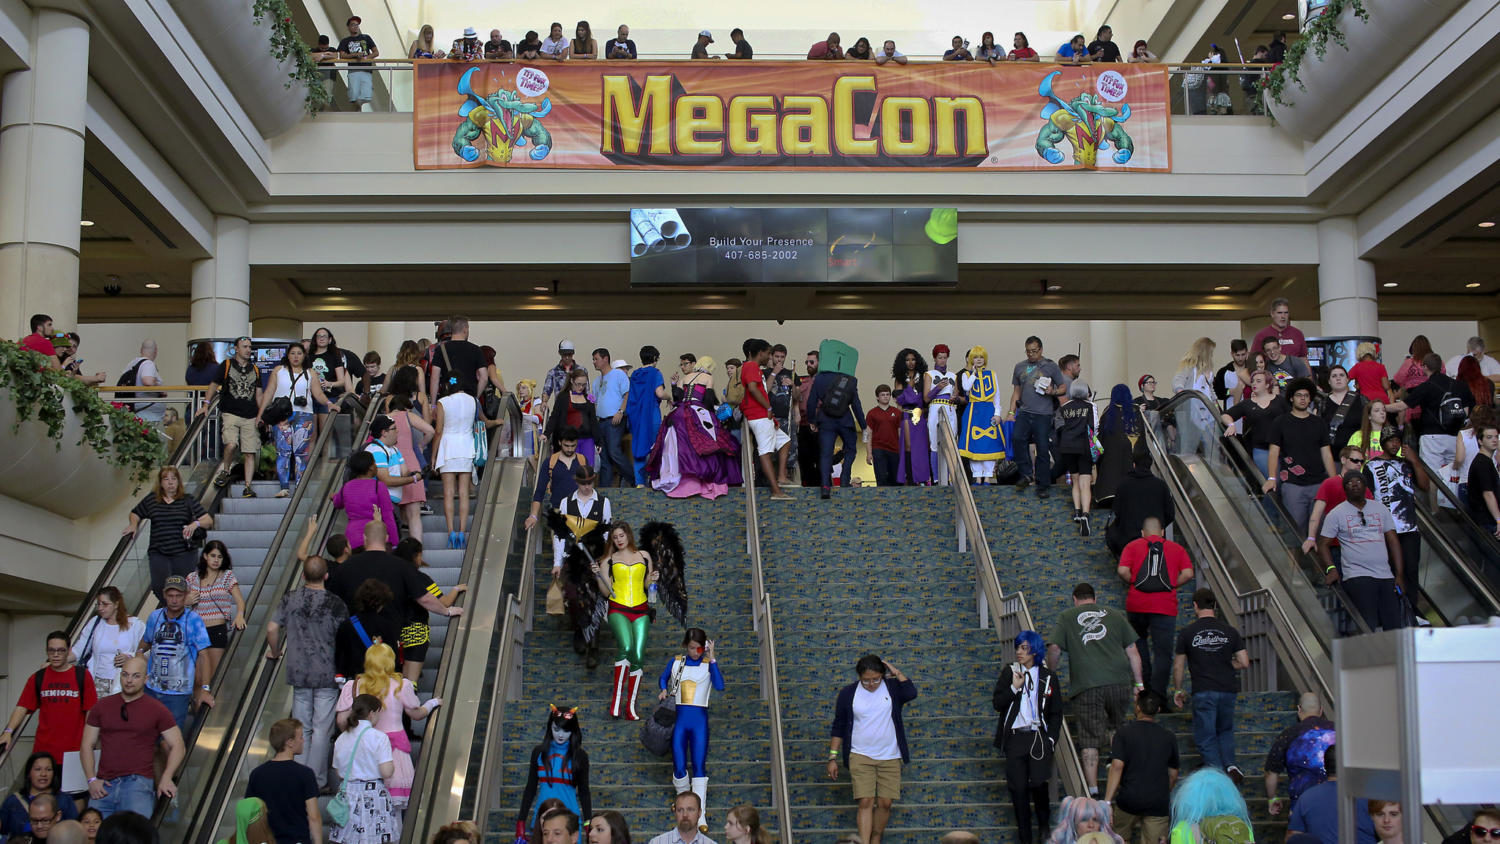 Megacon+will+be+arriving+to+the+Orange+County+Convention+Center+on+May+25th+and+will+end+on+May+28th.